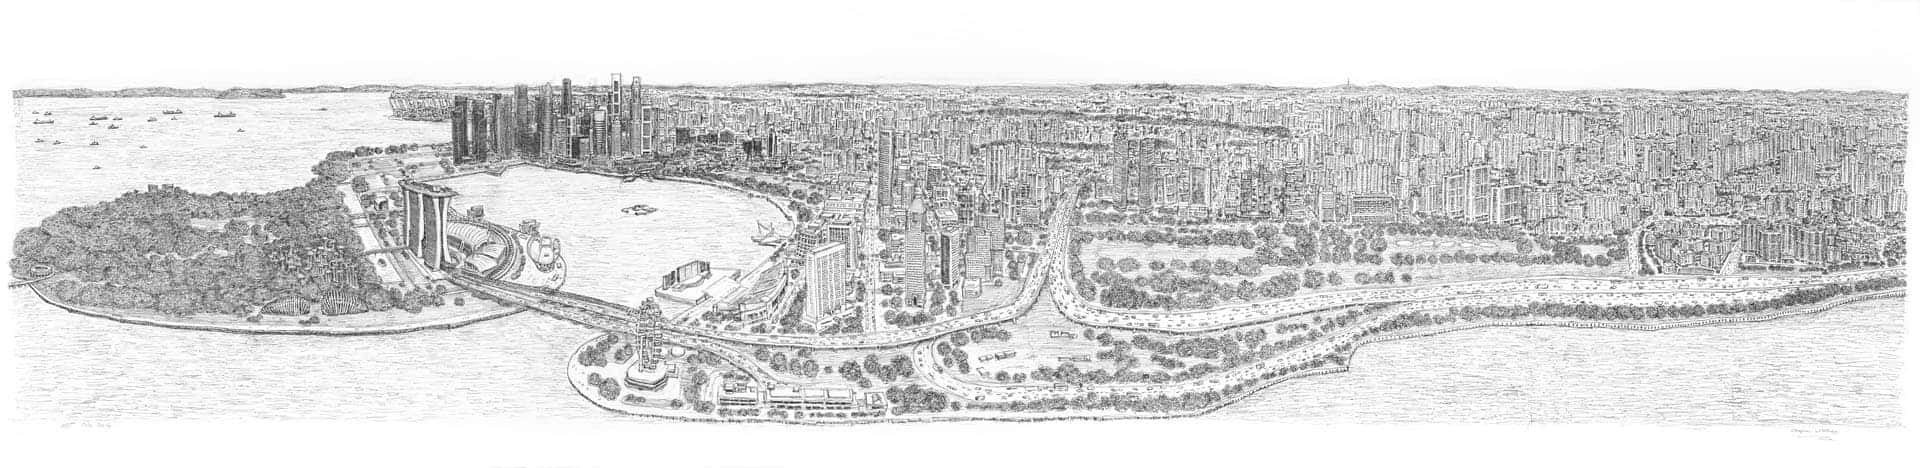 Stephen Wiltshire draws Singapore Panorama